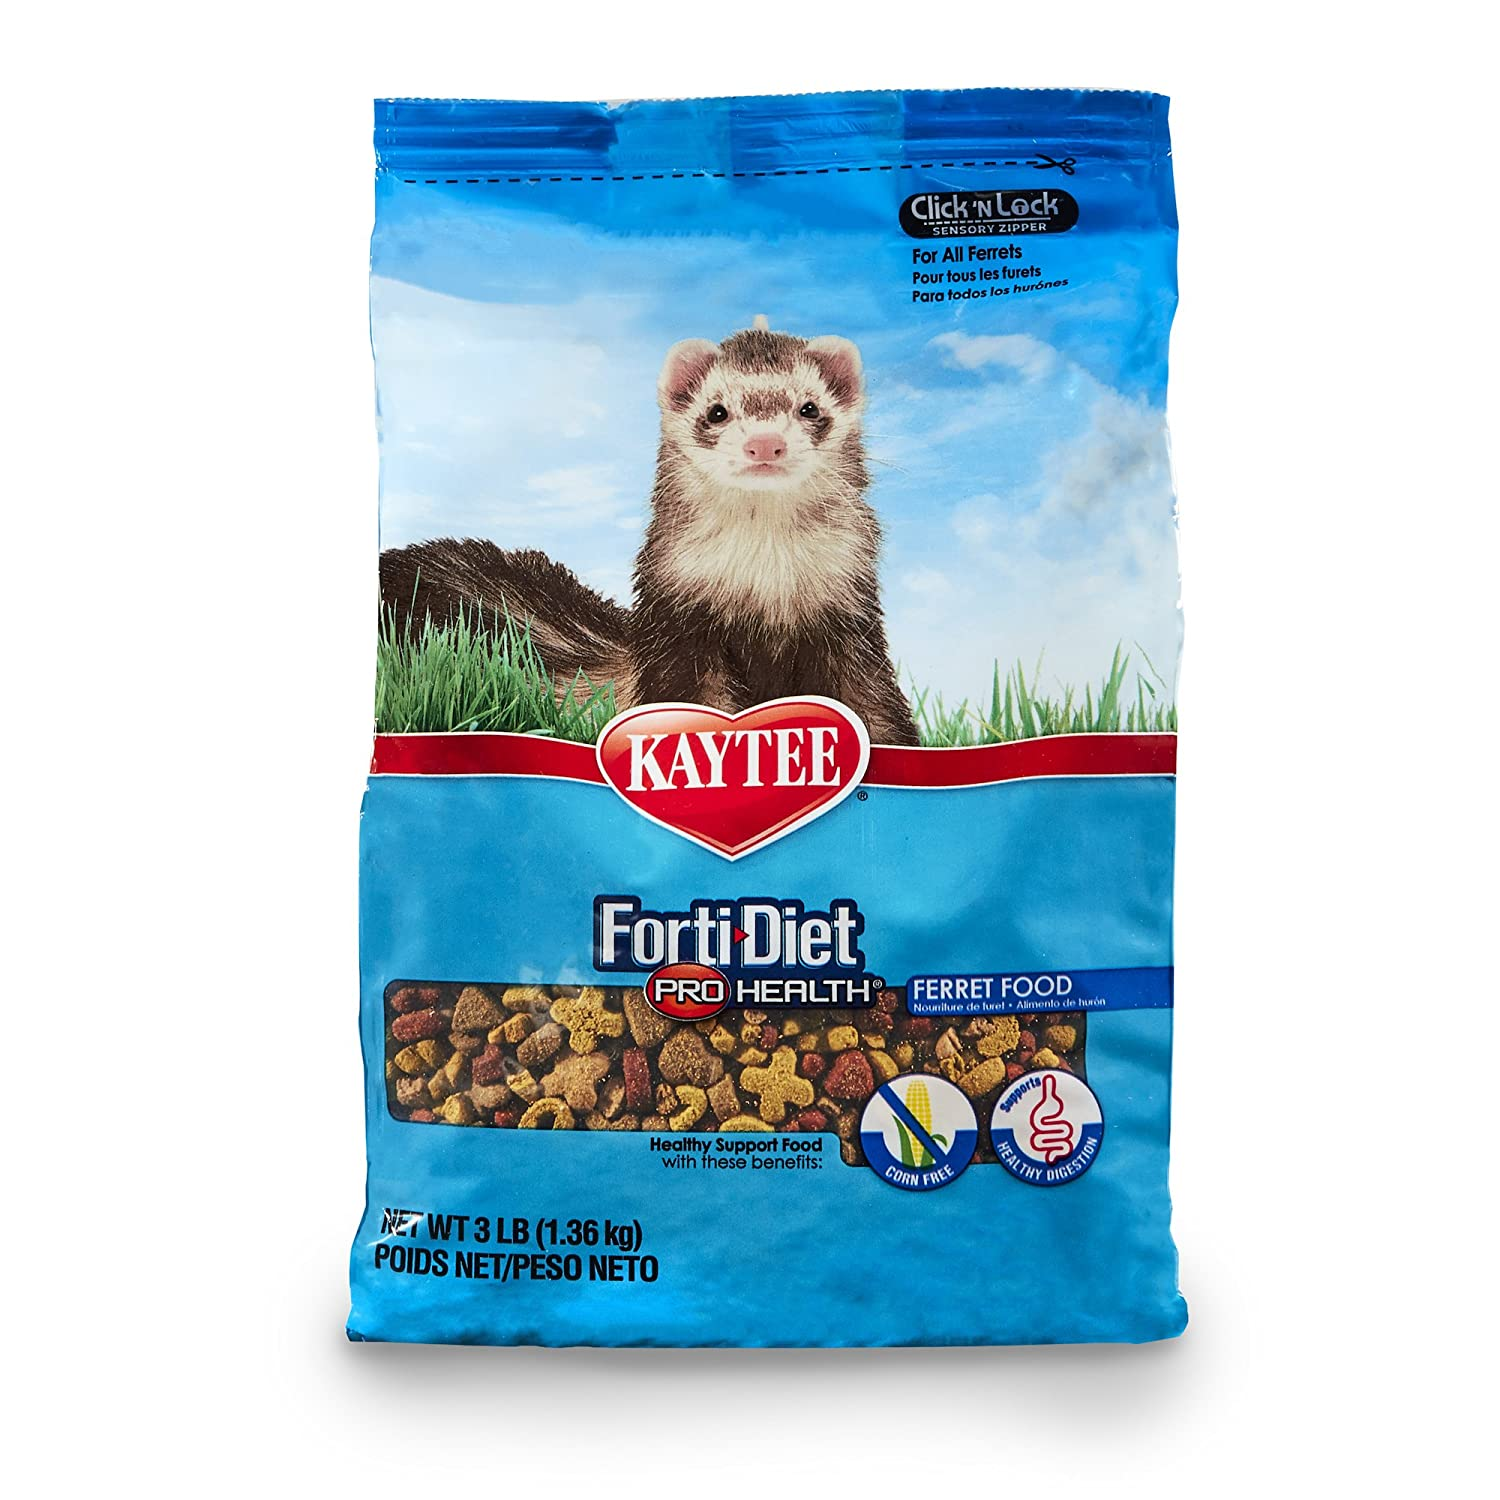 Kaytee Forti Diet Pro Health Small Animal Food for Ferrets 3-Pound